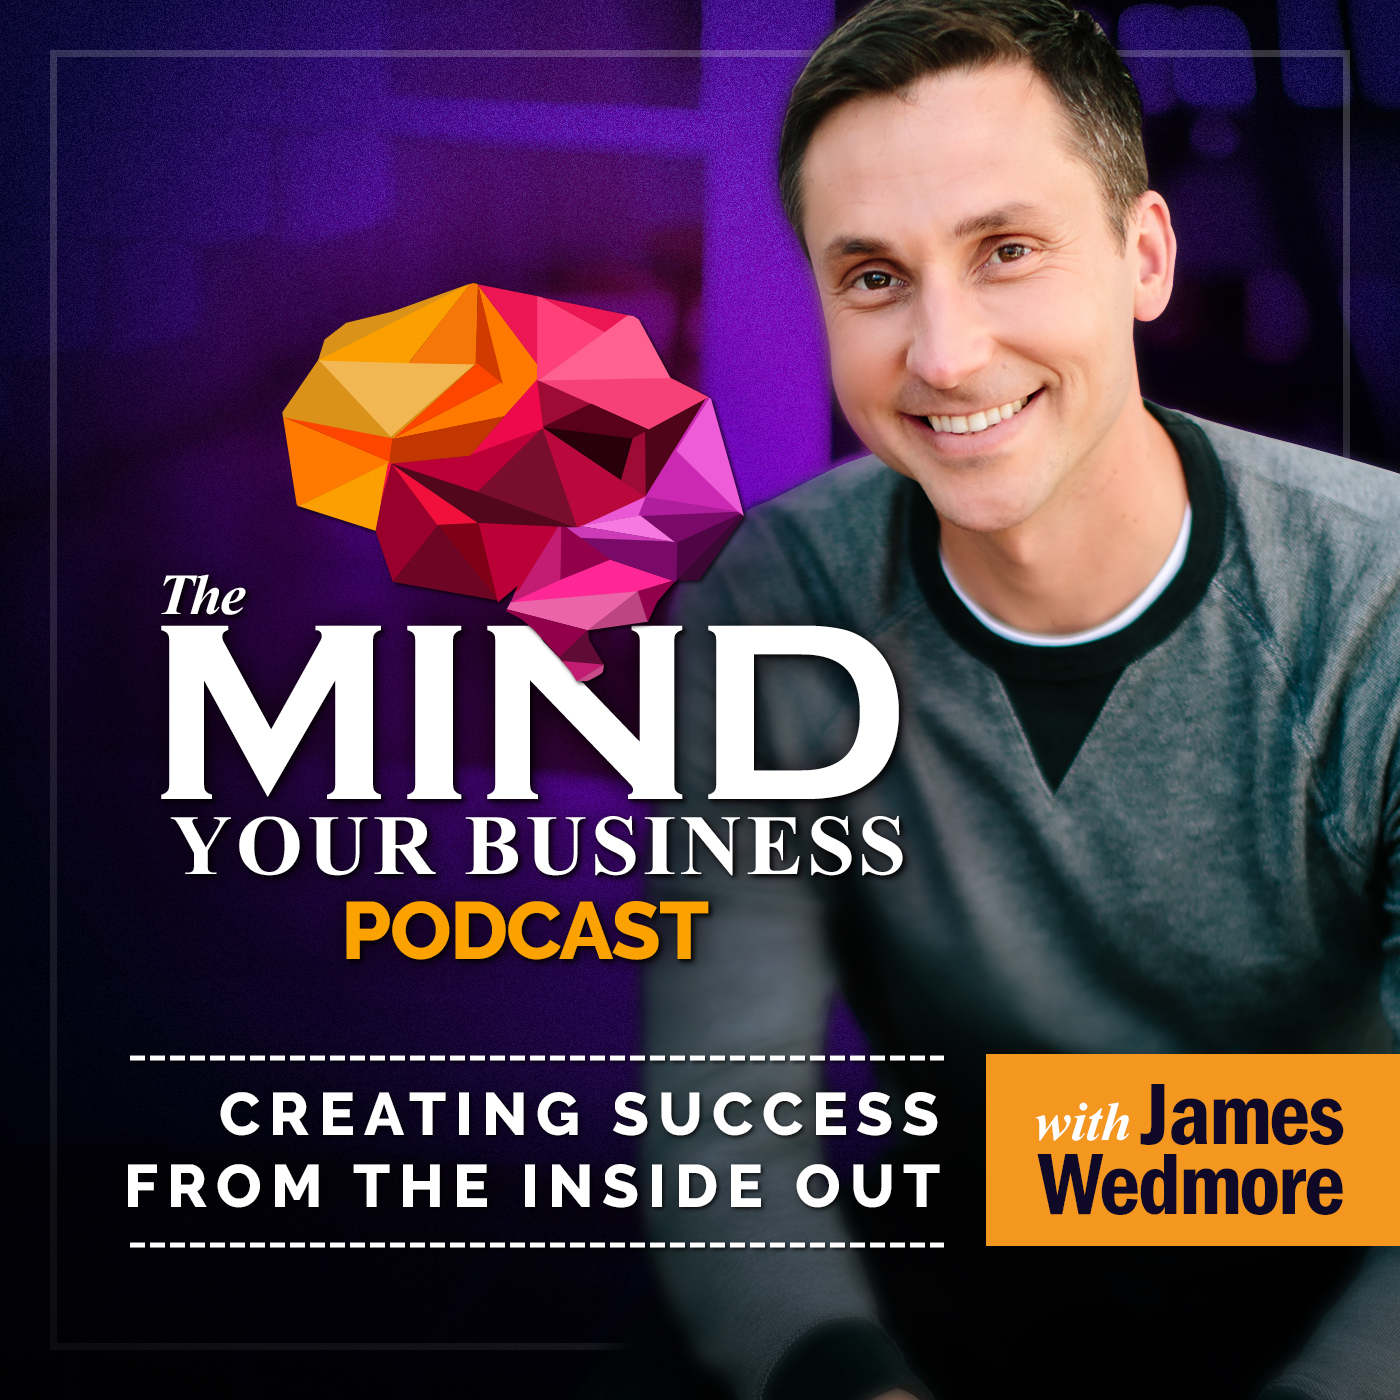 The mind your business podcast james wedmore.jpg